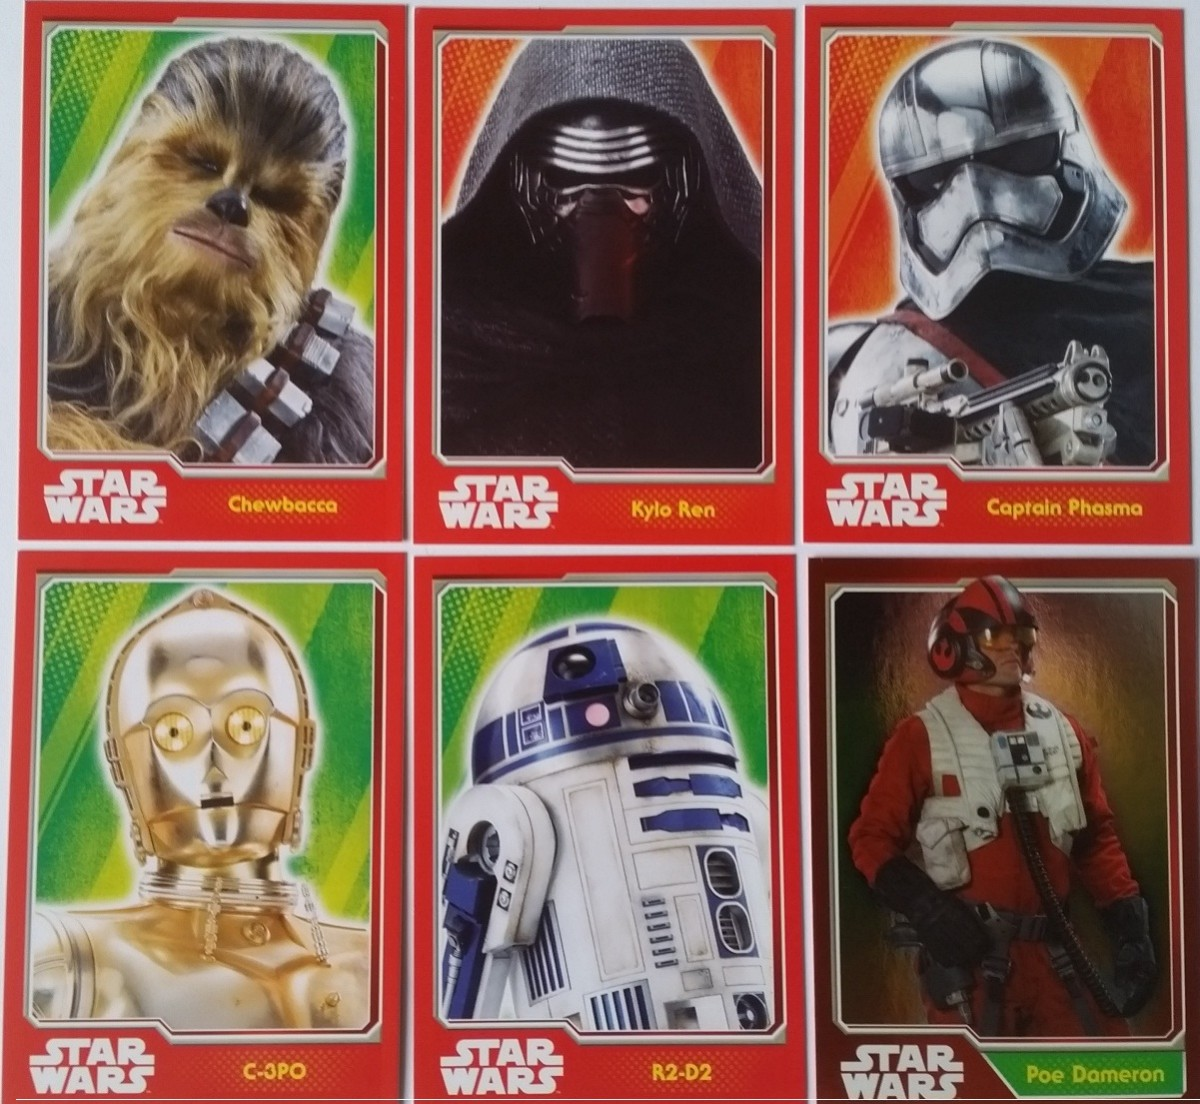 The Force Awakens (Preview) Cards contain character images rather than scenes from the film